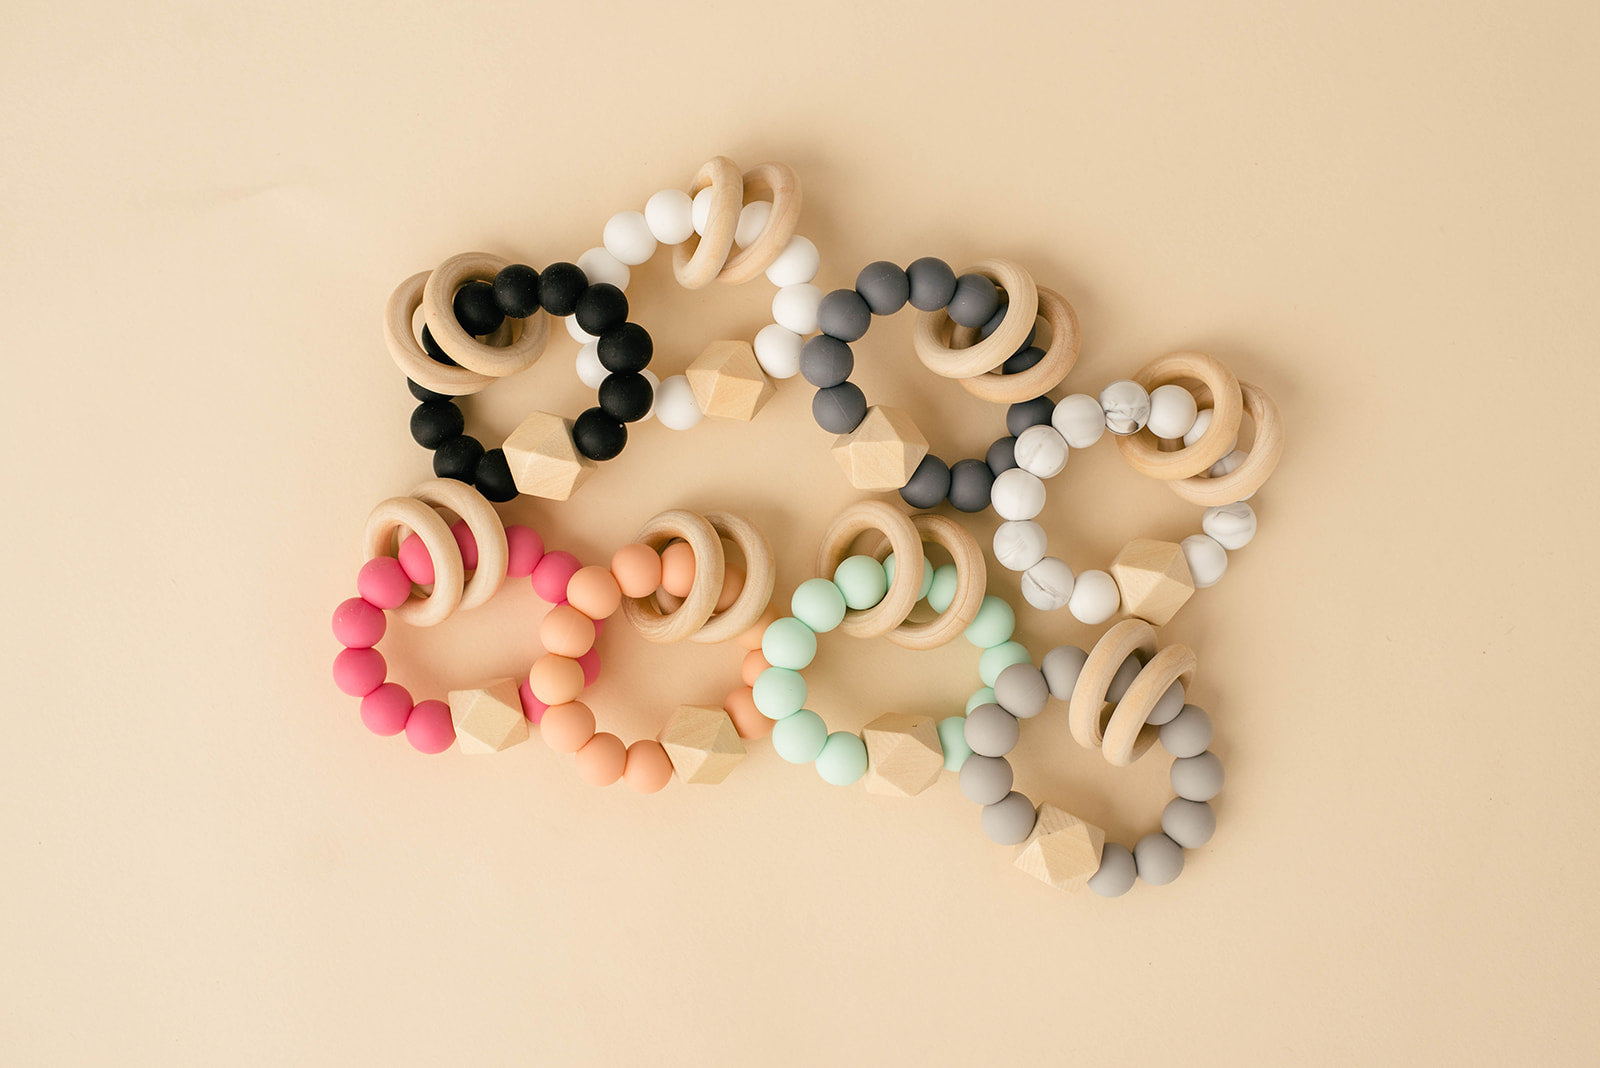 How to Choose a Teether for Your Baby